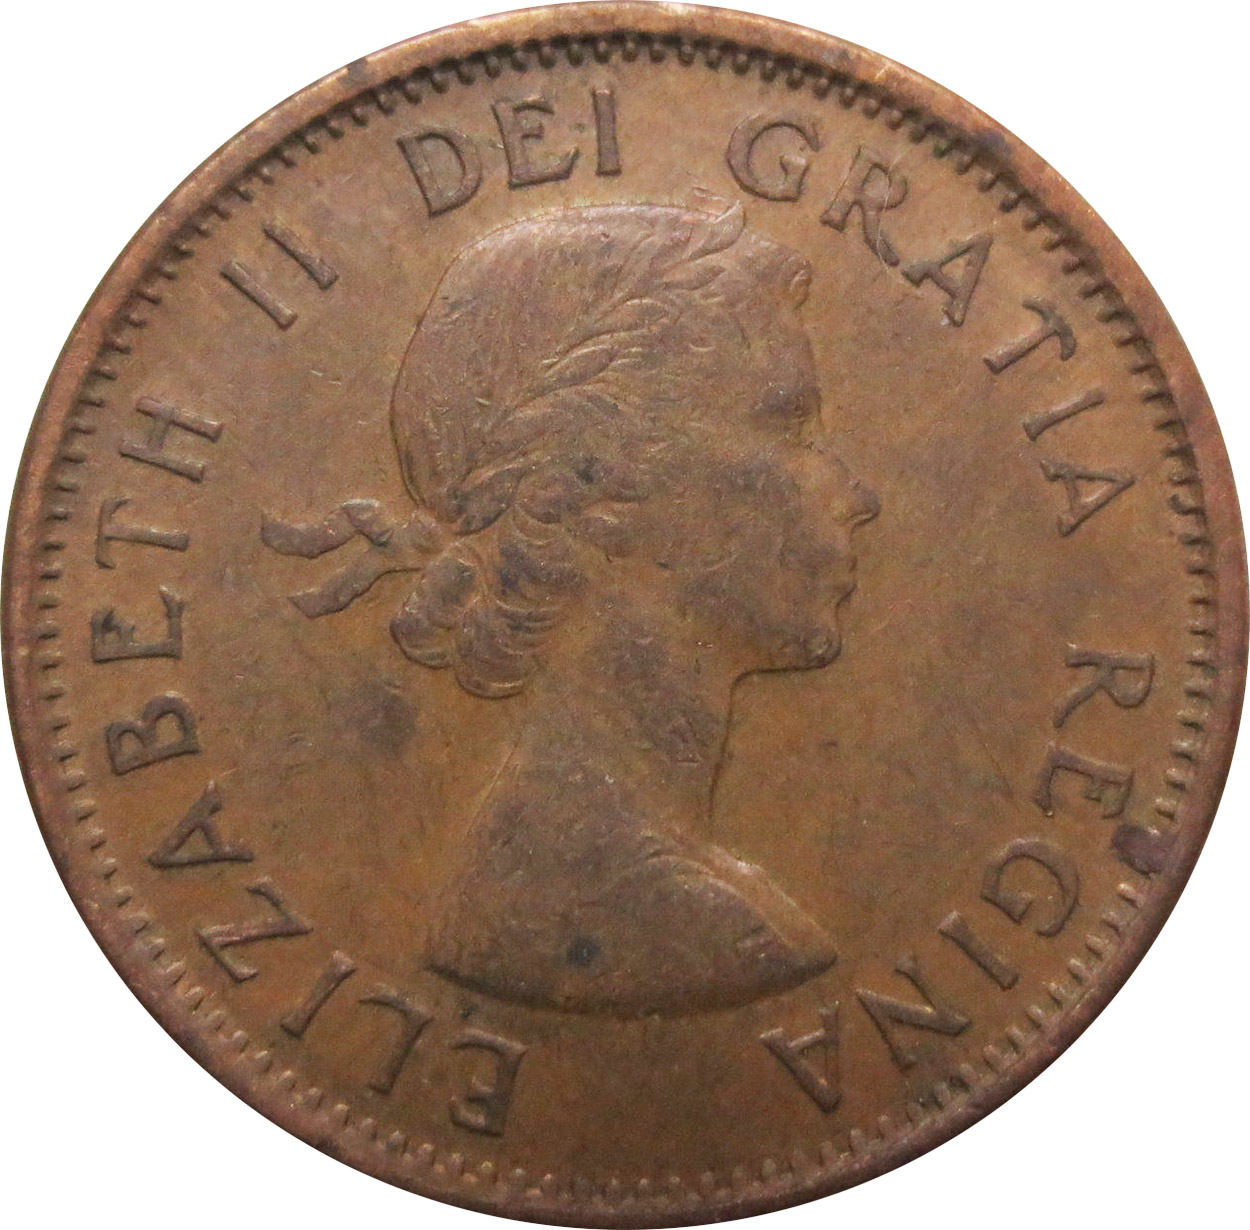 VF-20 - 1 cent 1953 to 1964 - Elizabeth II